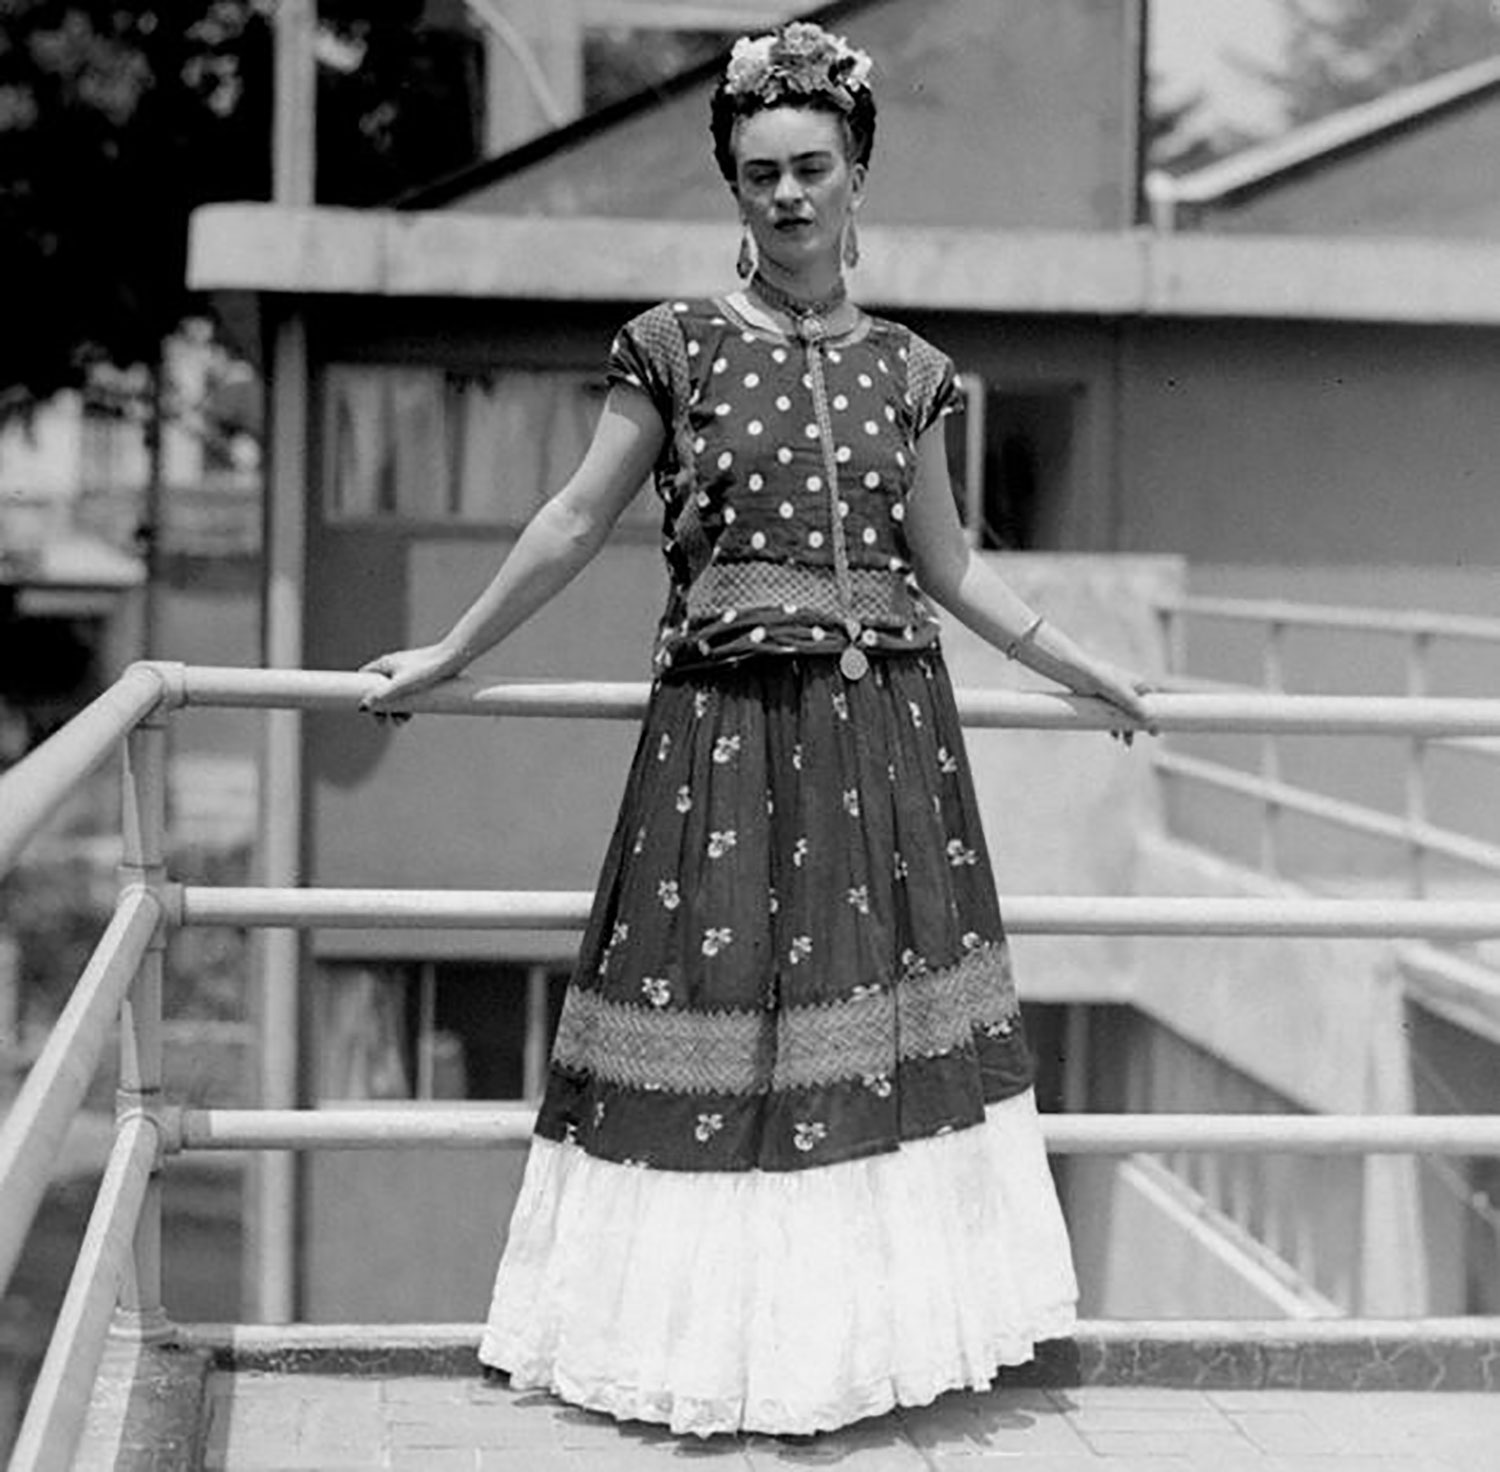 Frida-on-roof.jpg